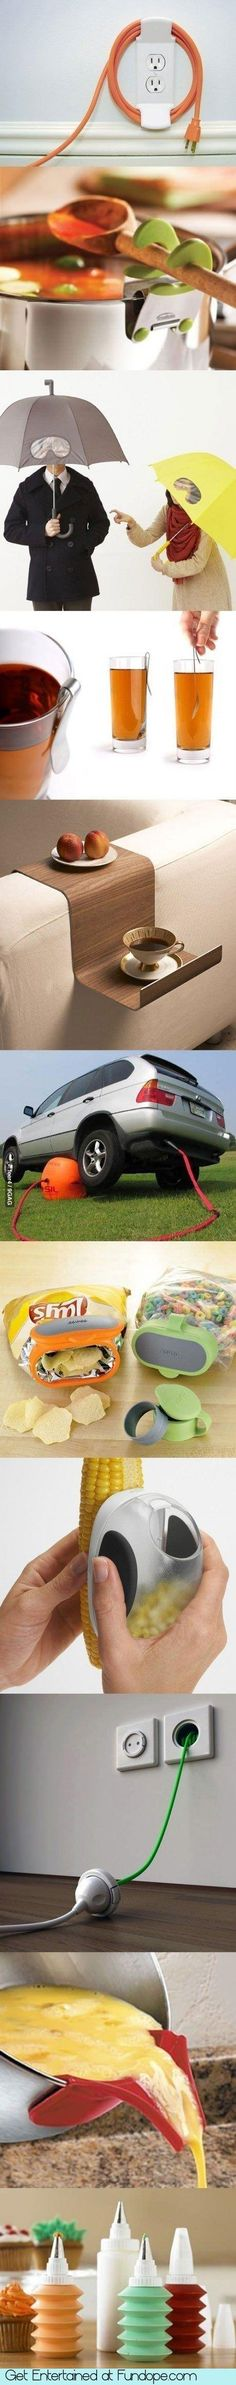 Useful and clever inventions